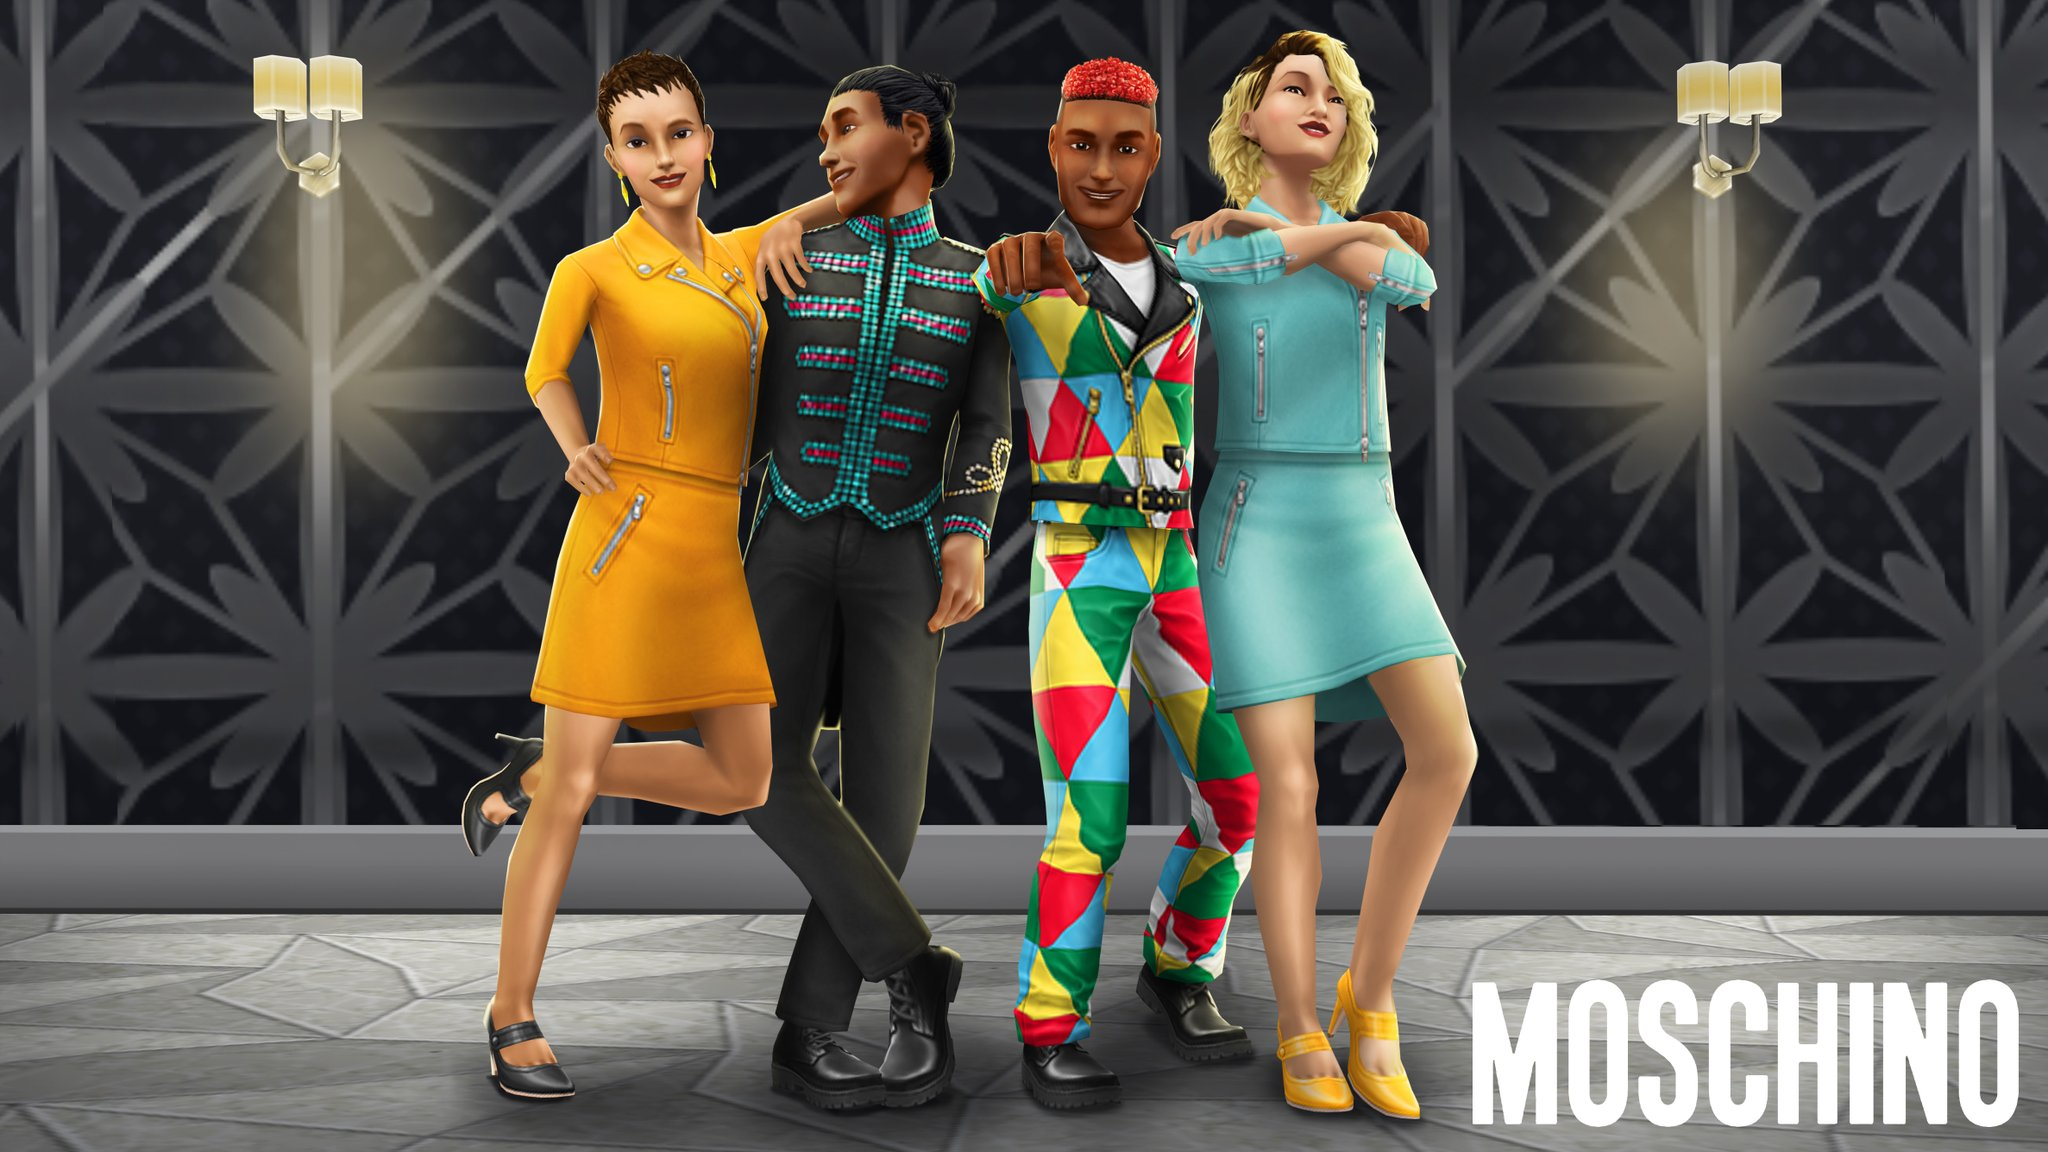 The Sims Freeplay On Twitter Get Your Hands On More Individual Bold Designer Fashion Items From Moschino Available Now